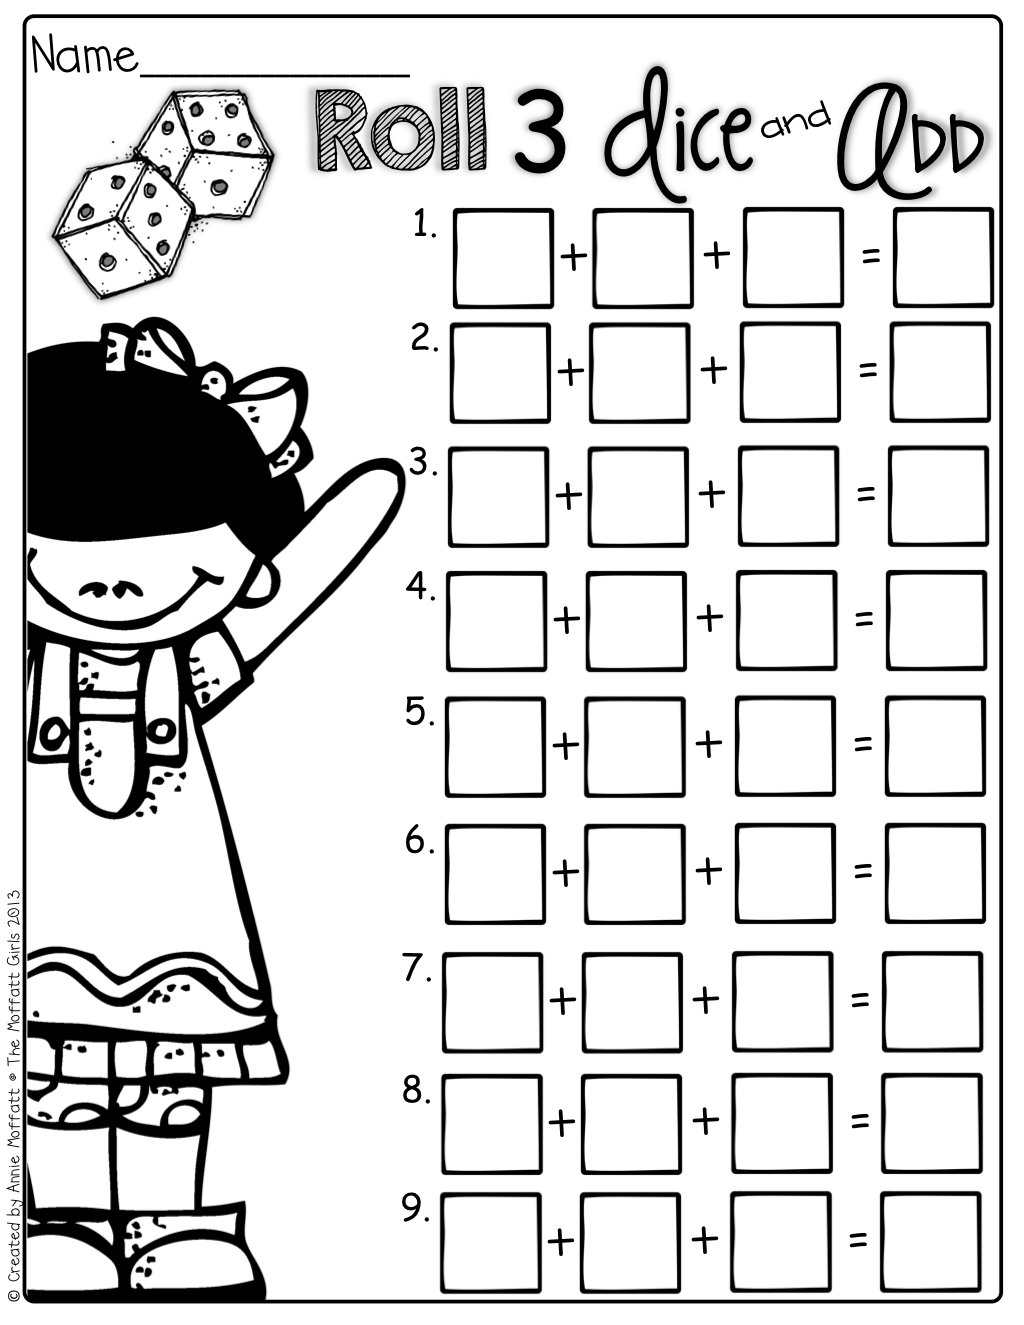 Parade Math Worksheets   Printable Worksheets and Activities for Teachers [ 1325 x 1024 Pixel ]